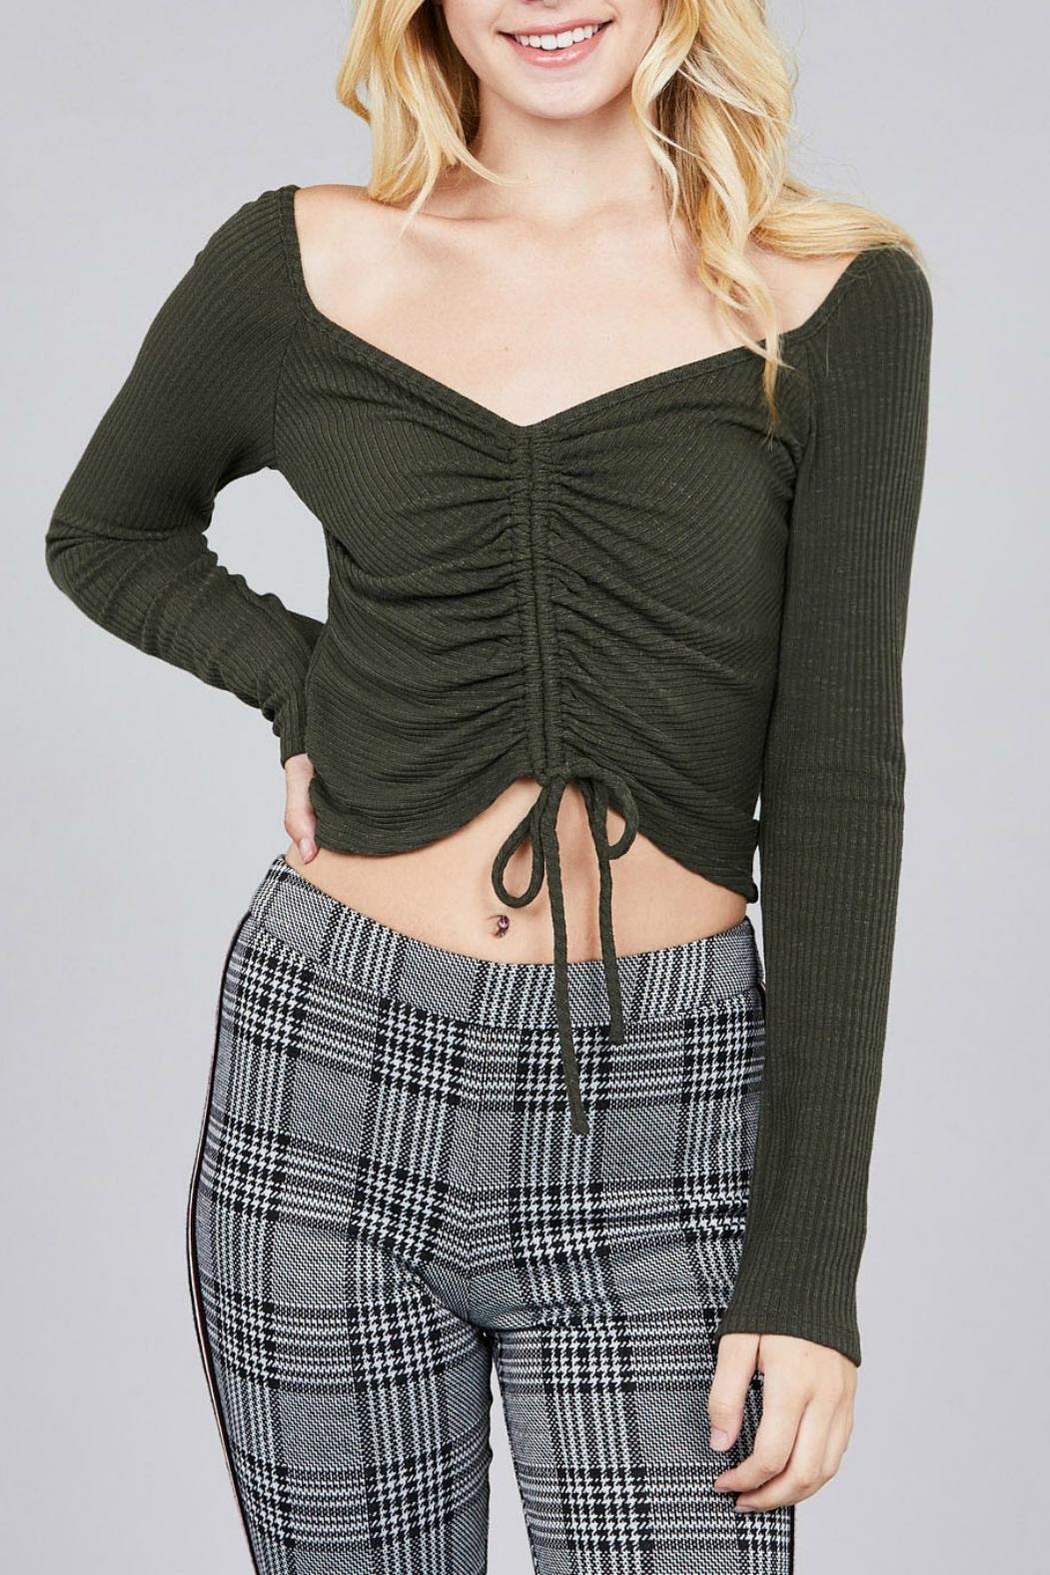 Pretty Little Things Ruched Drawstring Top - Main Image